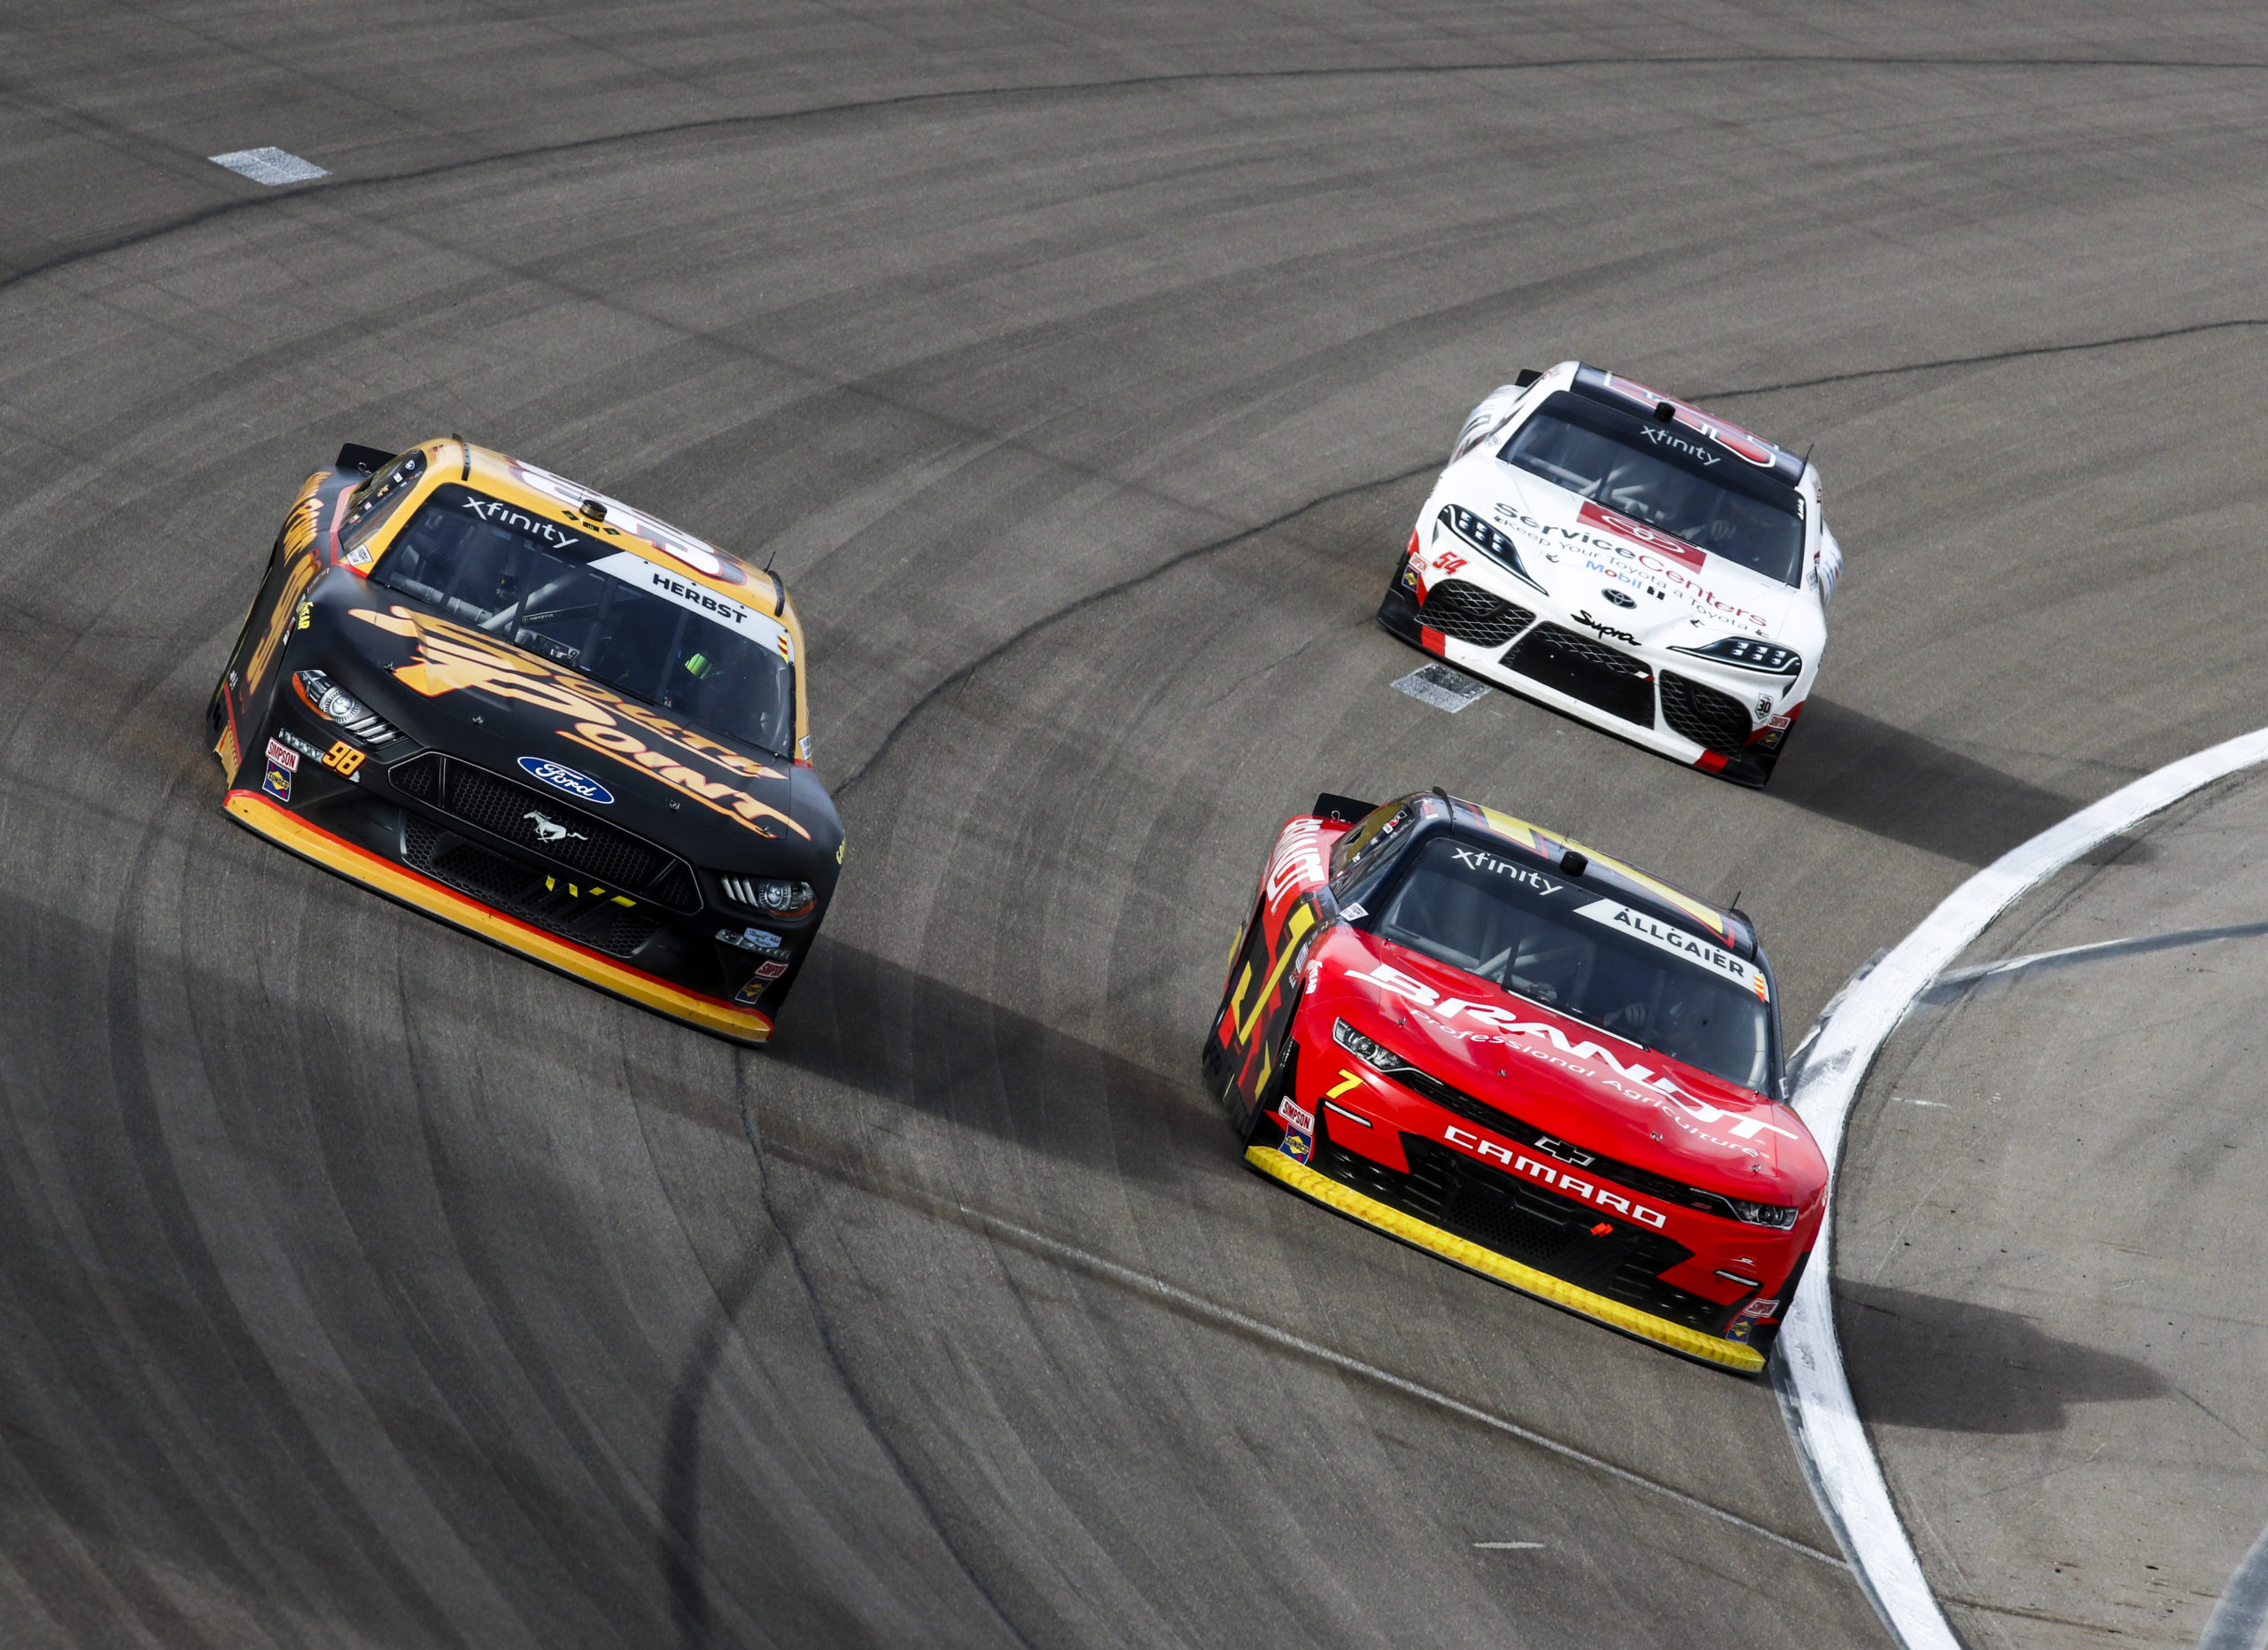 Riley Herbst battles on the outside of Justin Allgiaer ahead of Ty Dillon in the 2021 Alsco Uniforms 300 at Las Vegas Motor Speedway. Photo by Rachel Schuoler / Kickin' the Tires.